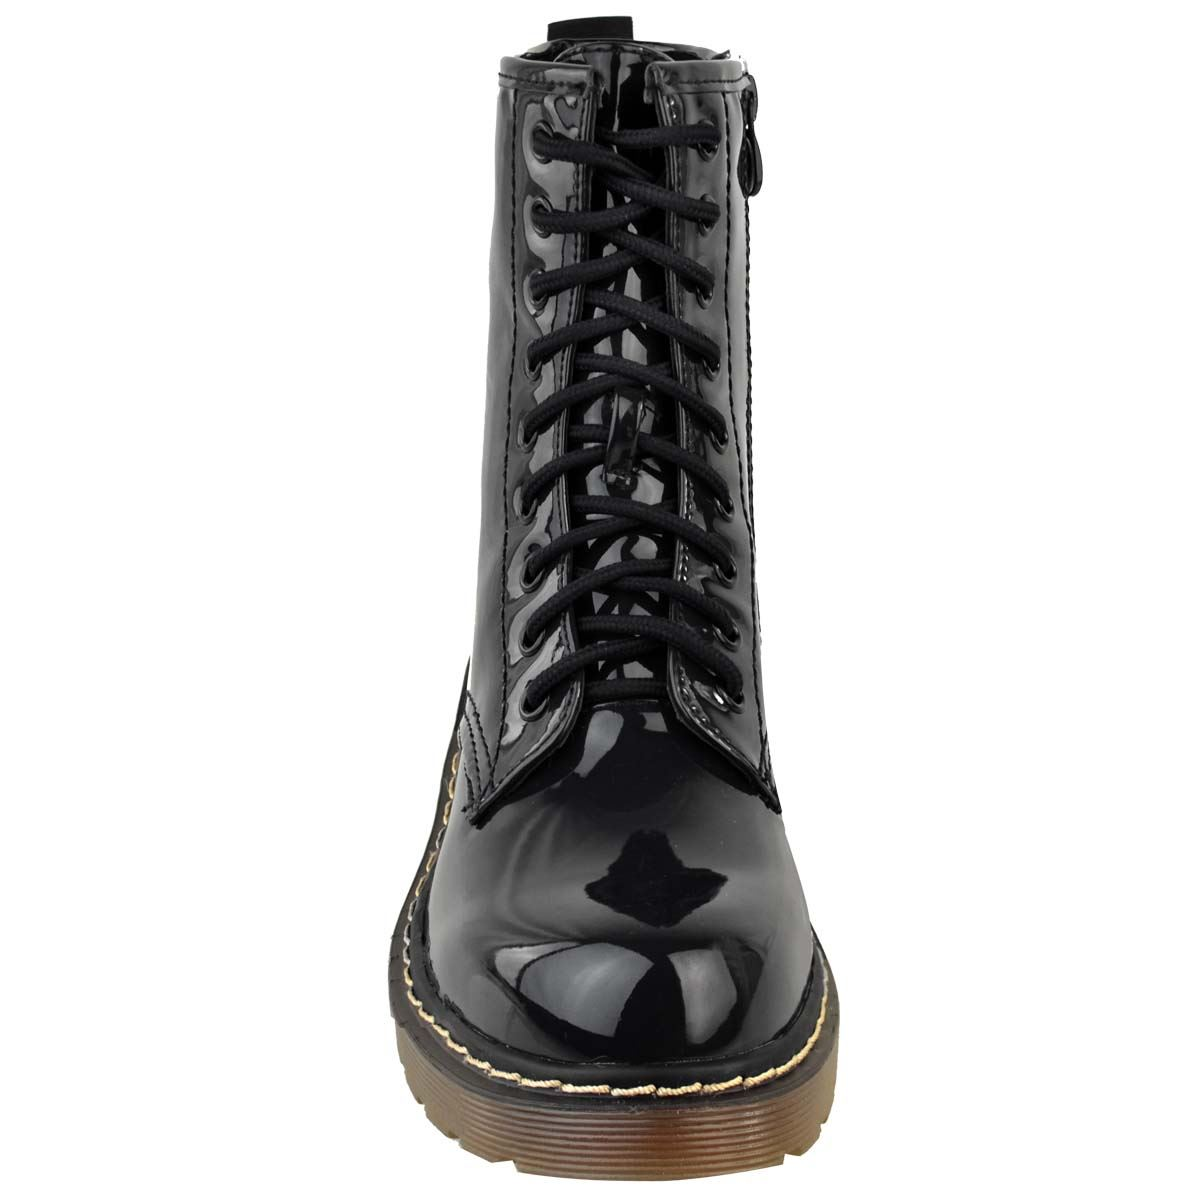 Womens-Ladies-Doc-Ankle-Boots-Low-Flat-Heel-Lace-Up-Worker-Army-Black-Goth-Size miniatuur 9